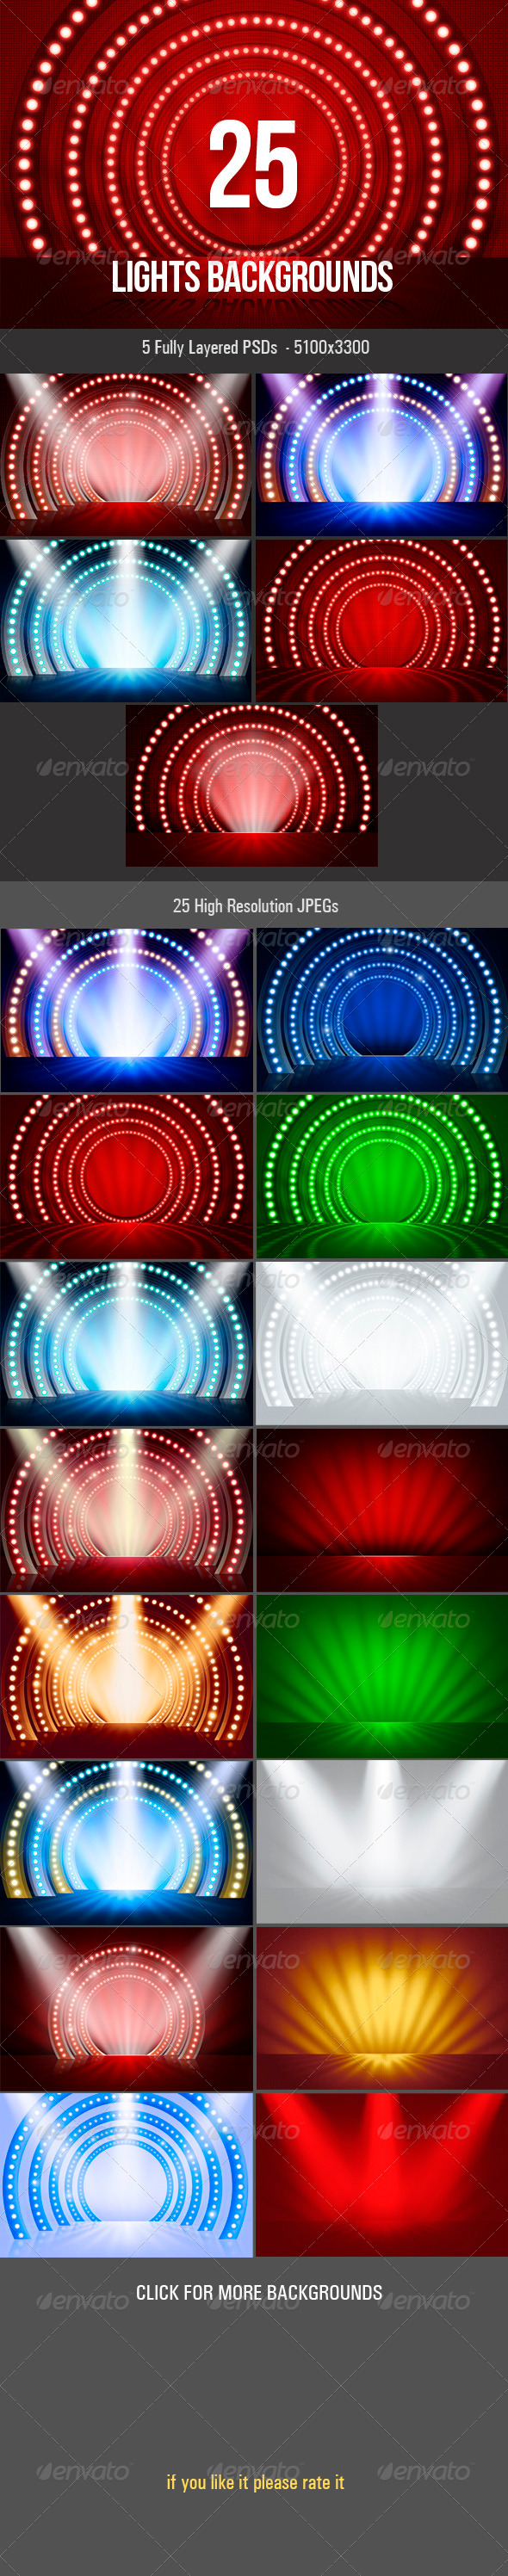 GraphicRiver Lights Backgrounds 3505539